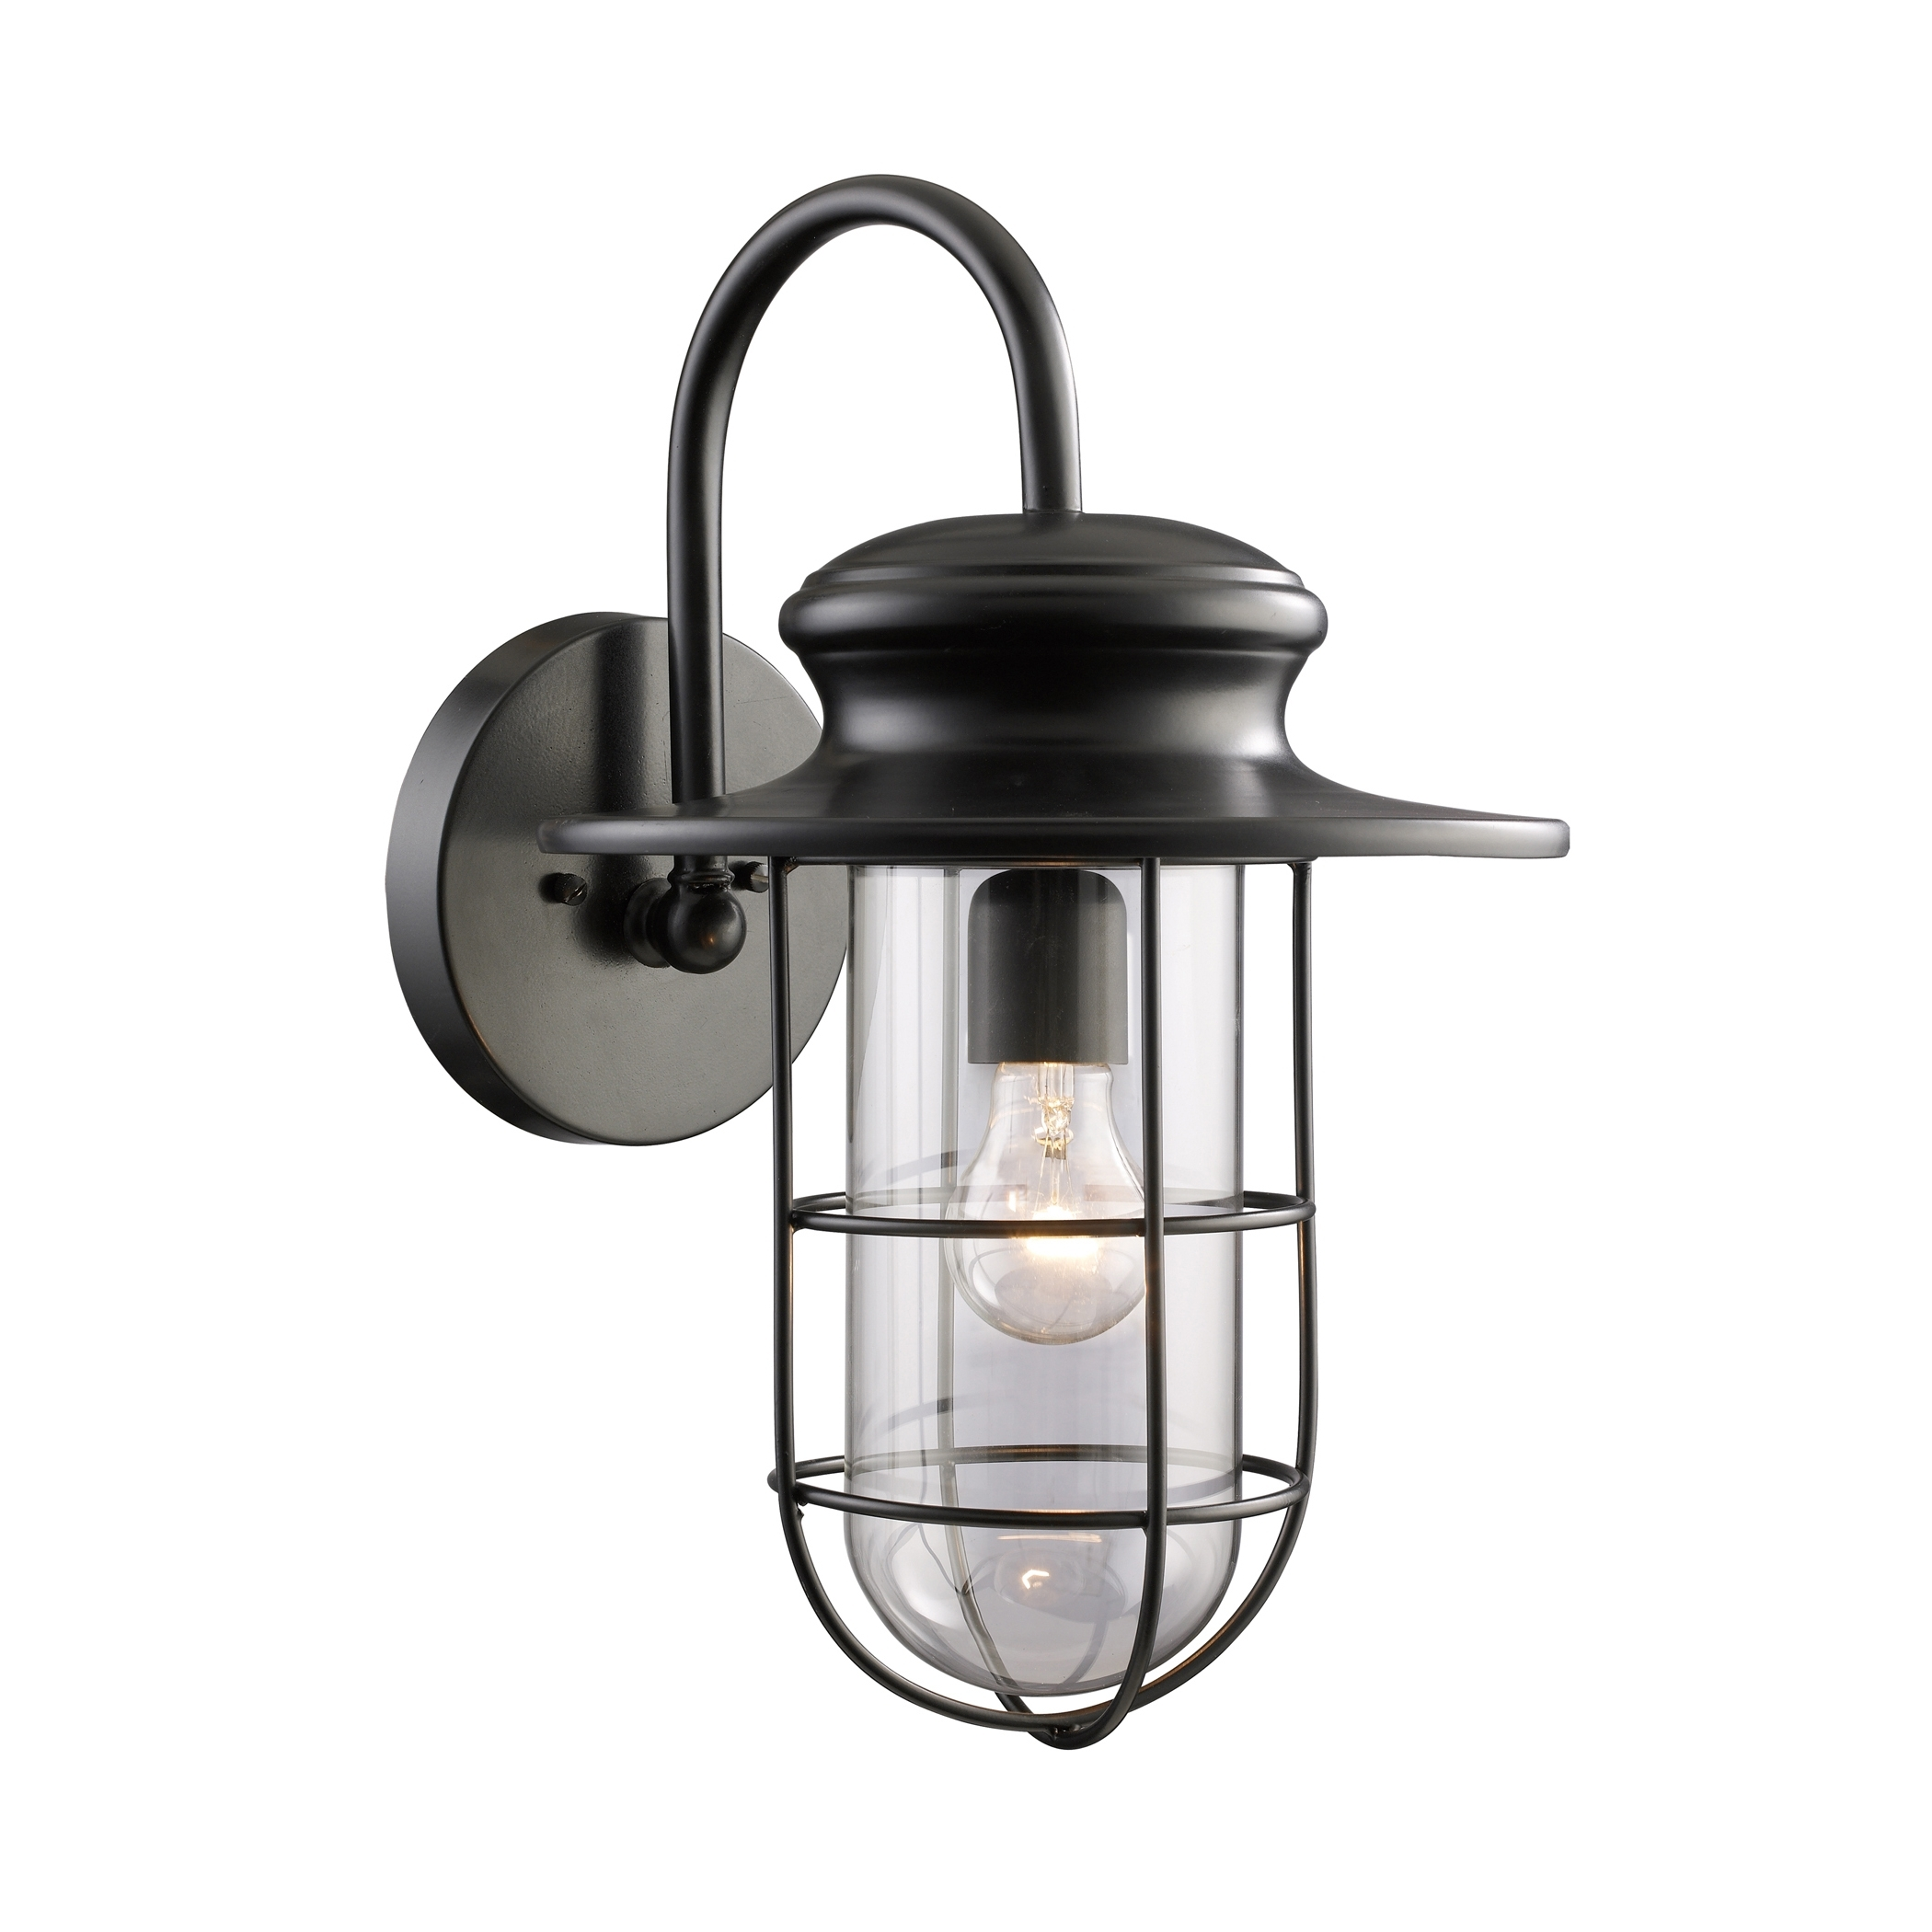 Outdoor Exterior Lanterns Within Famous Exterior Industrial Light Outdoor Fixture Lighting Uk Wall Mount (Gallery 15 of 20)